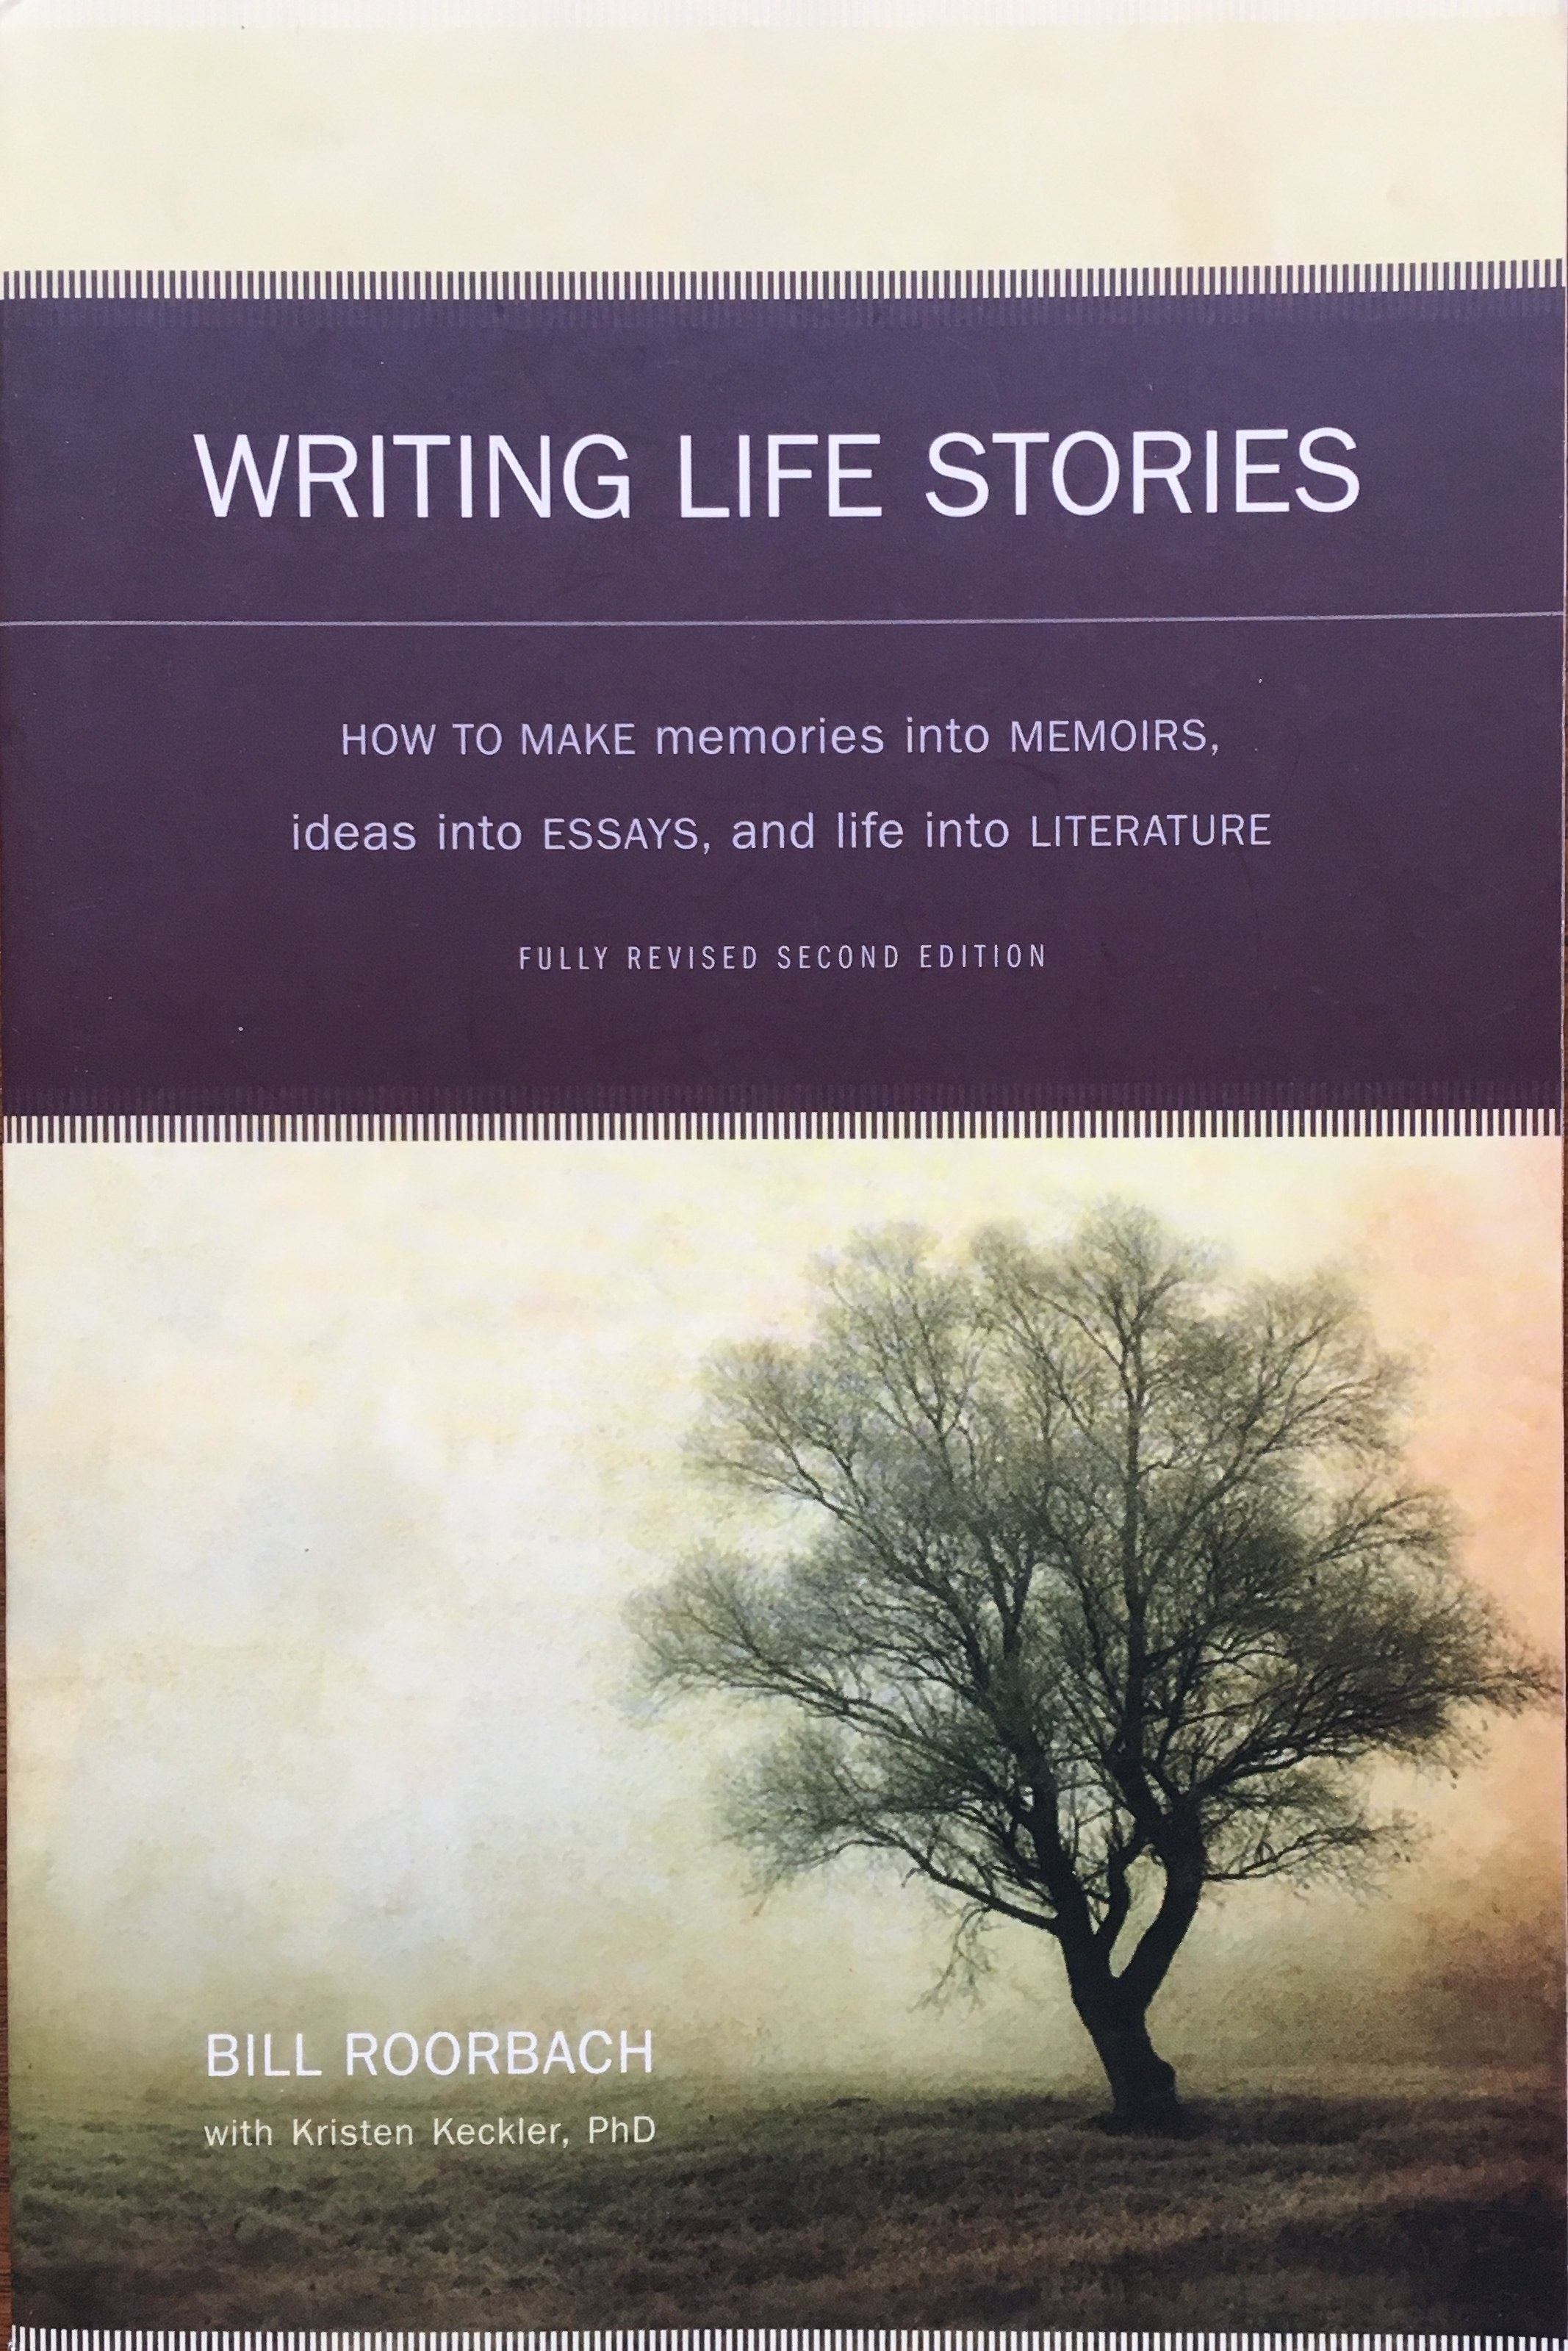 Buy Writing Life Stories From